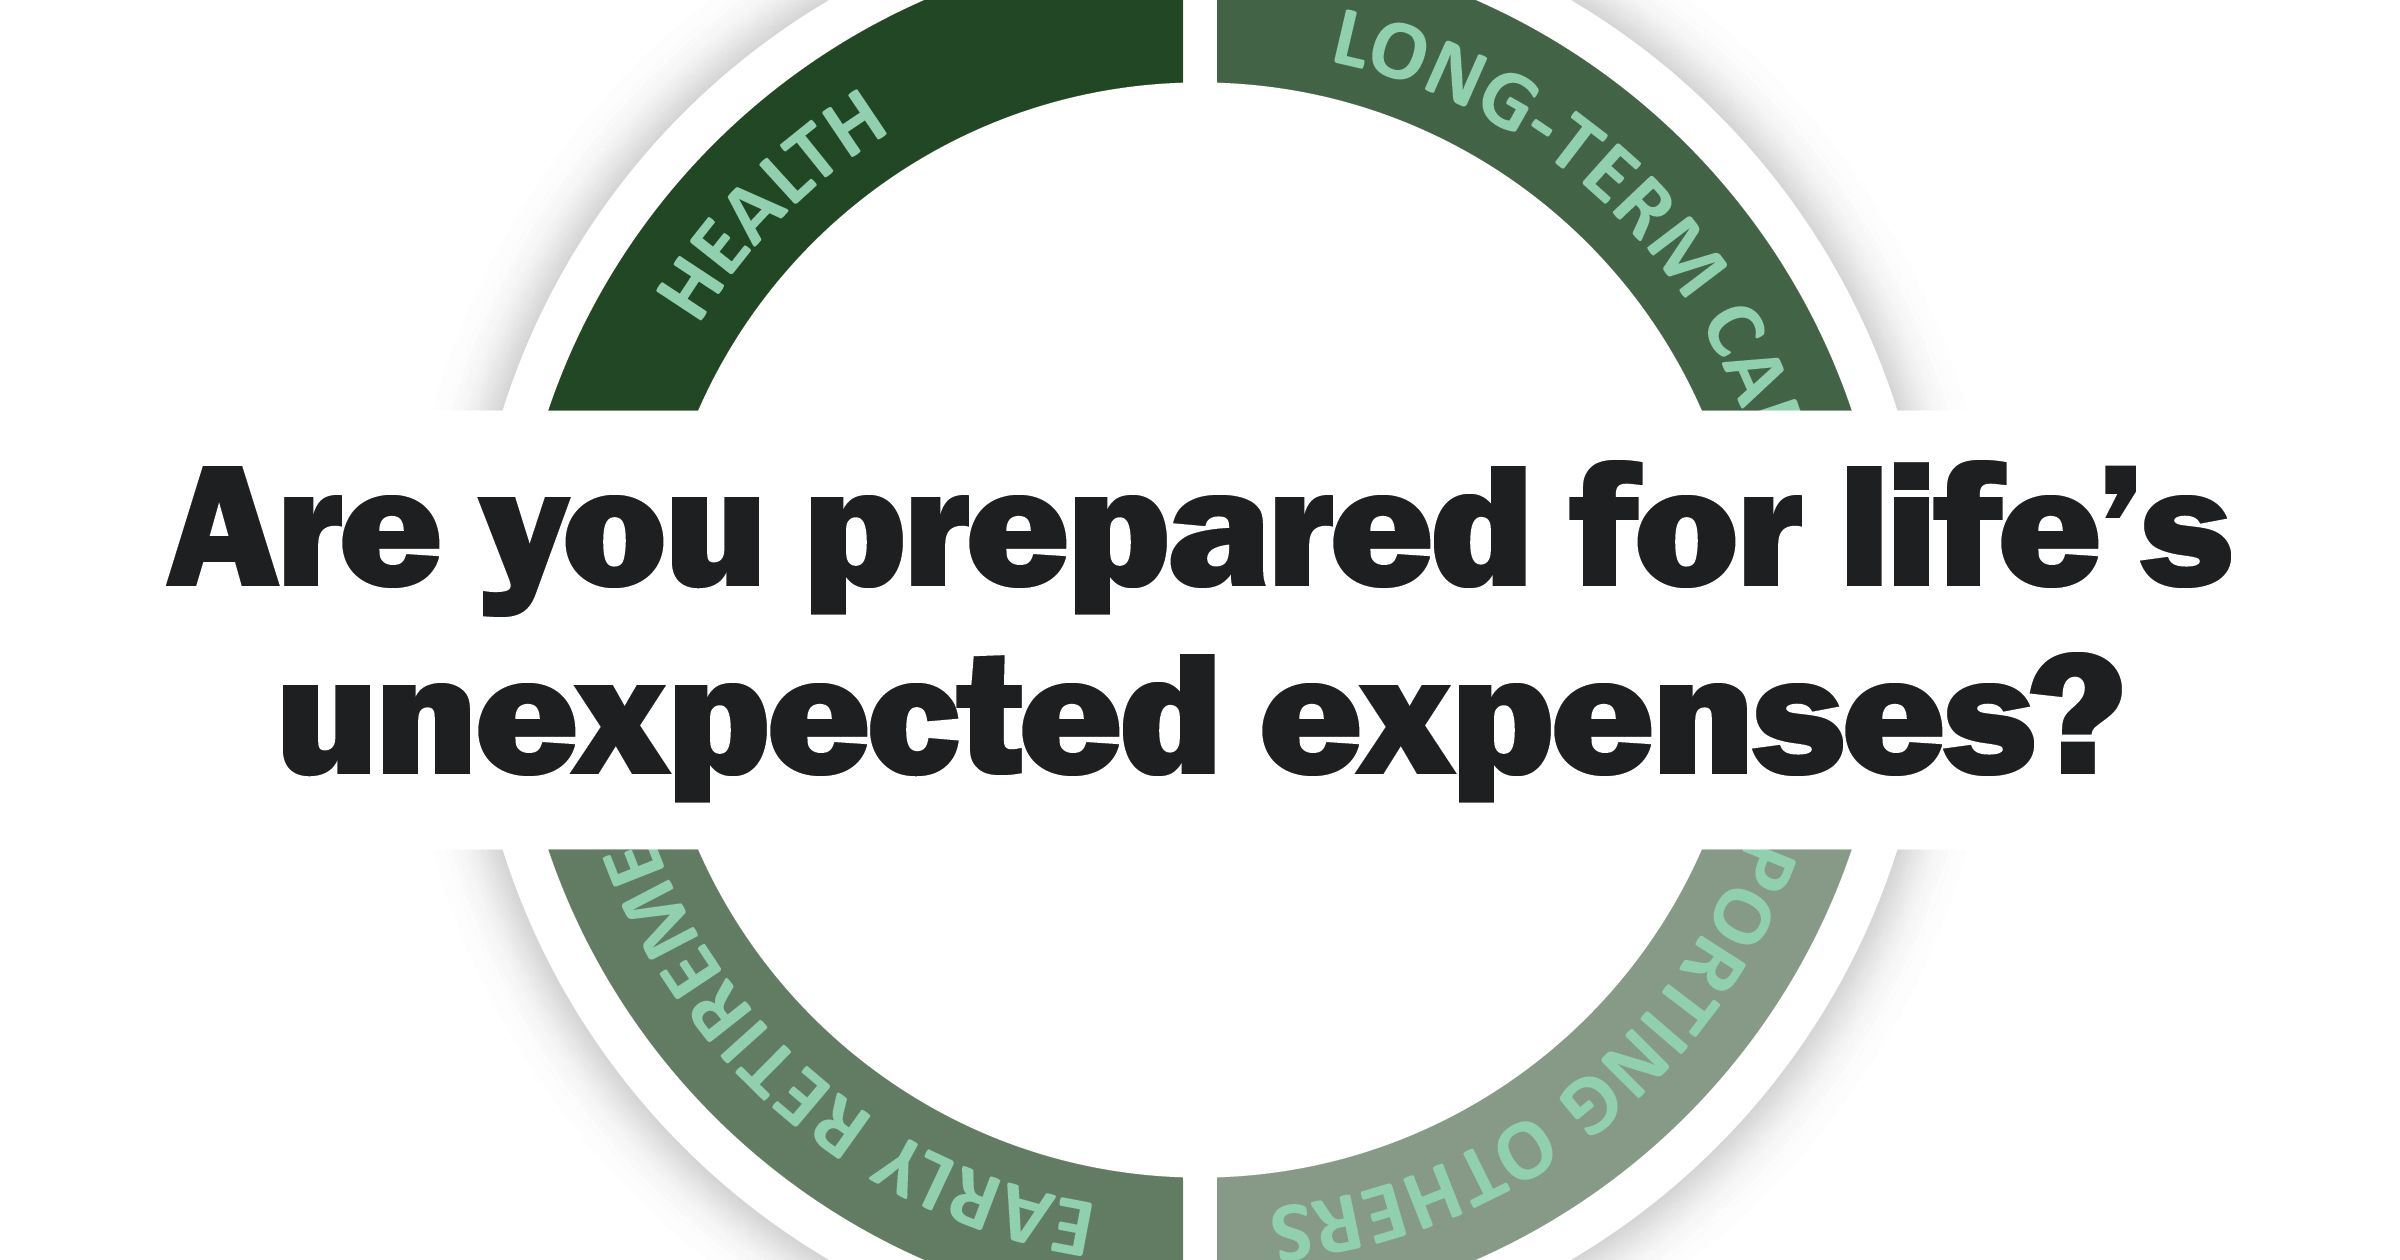 Are you prepared for life's unexpected expenses?